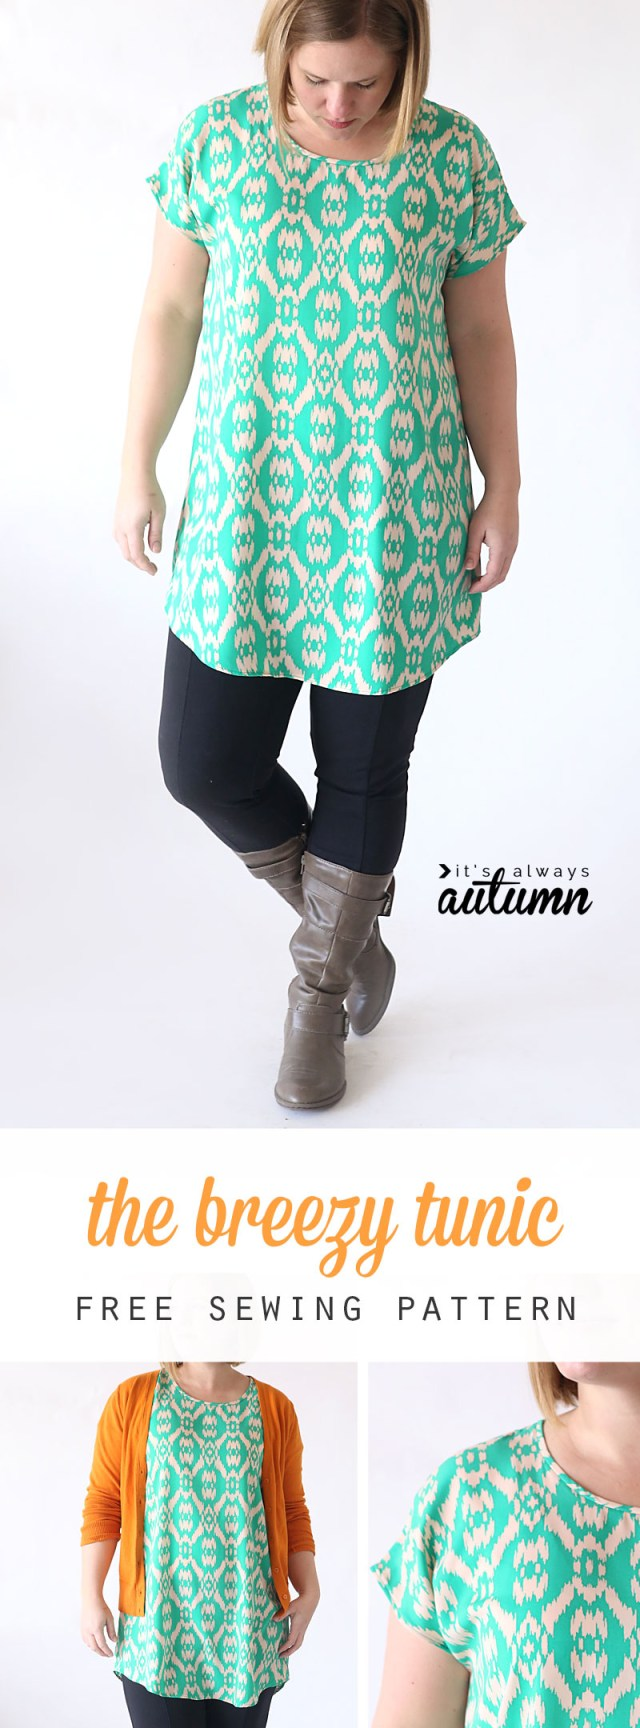 Blouse Sewing Patterns The Breezy Tee Tunic Free Sewing Pattern Its Always Autumn